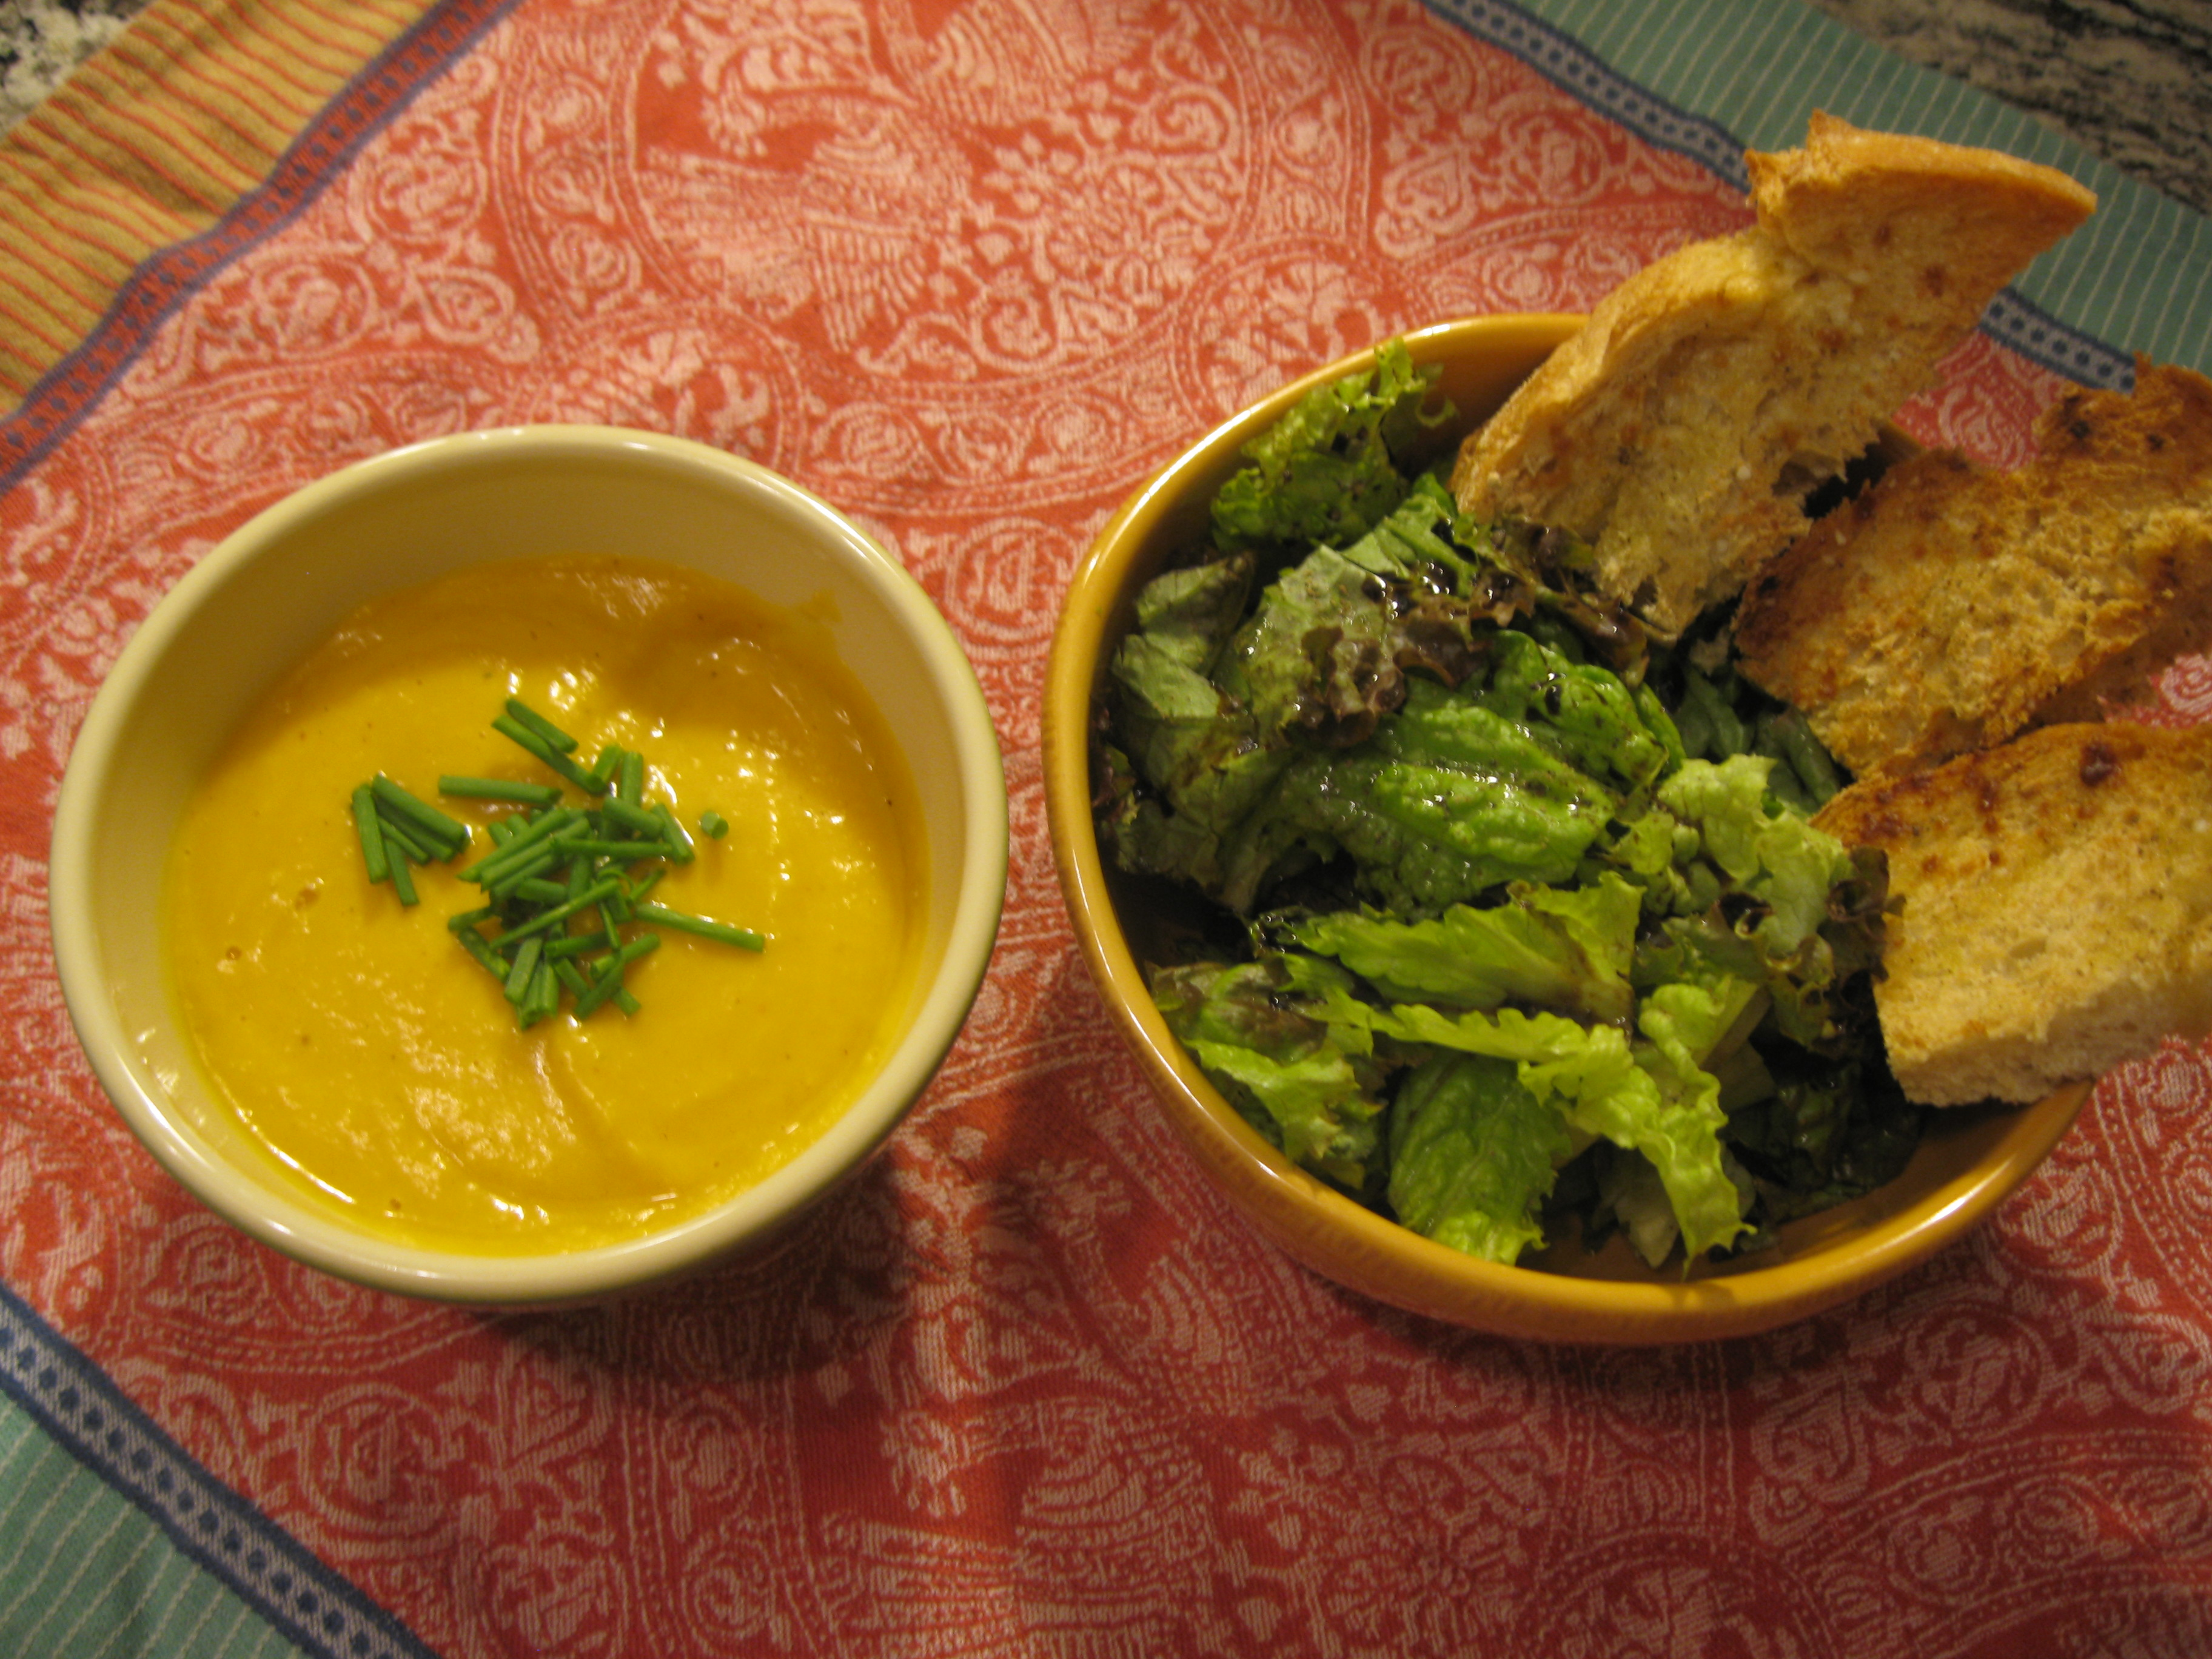 Recipe 11.4: Roasted Butternut Squash Soup with Salad and Bread Toasts